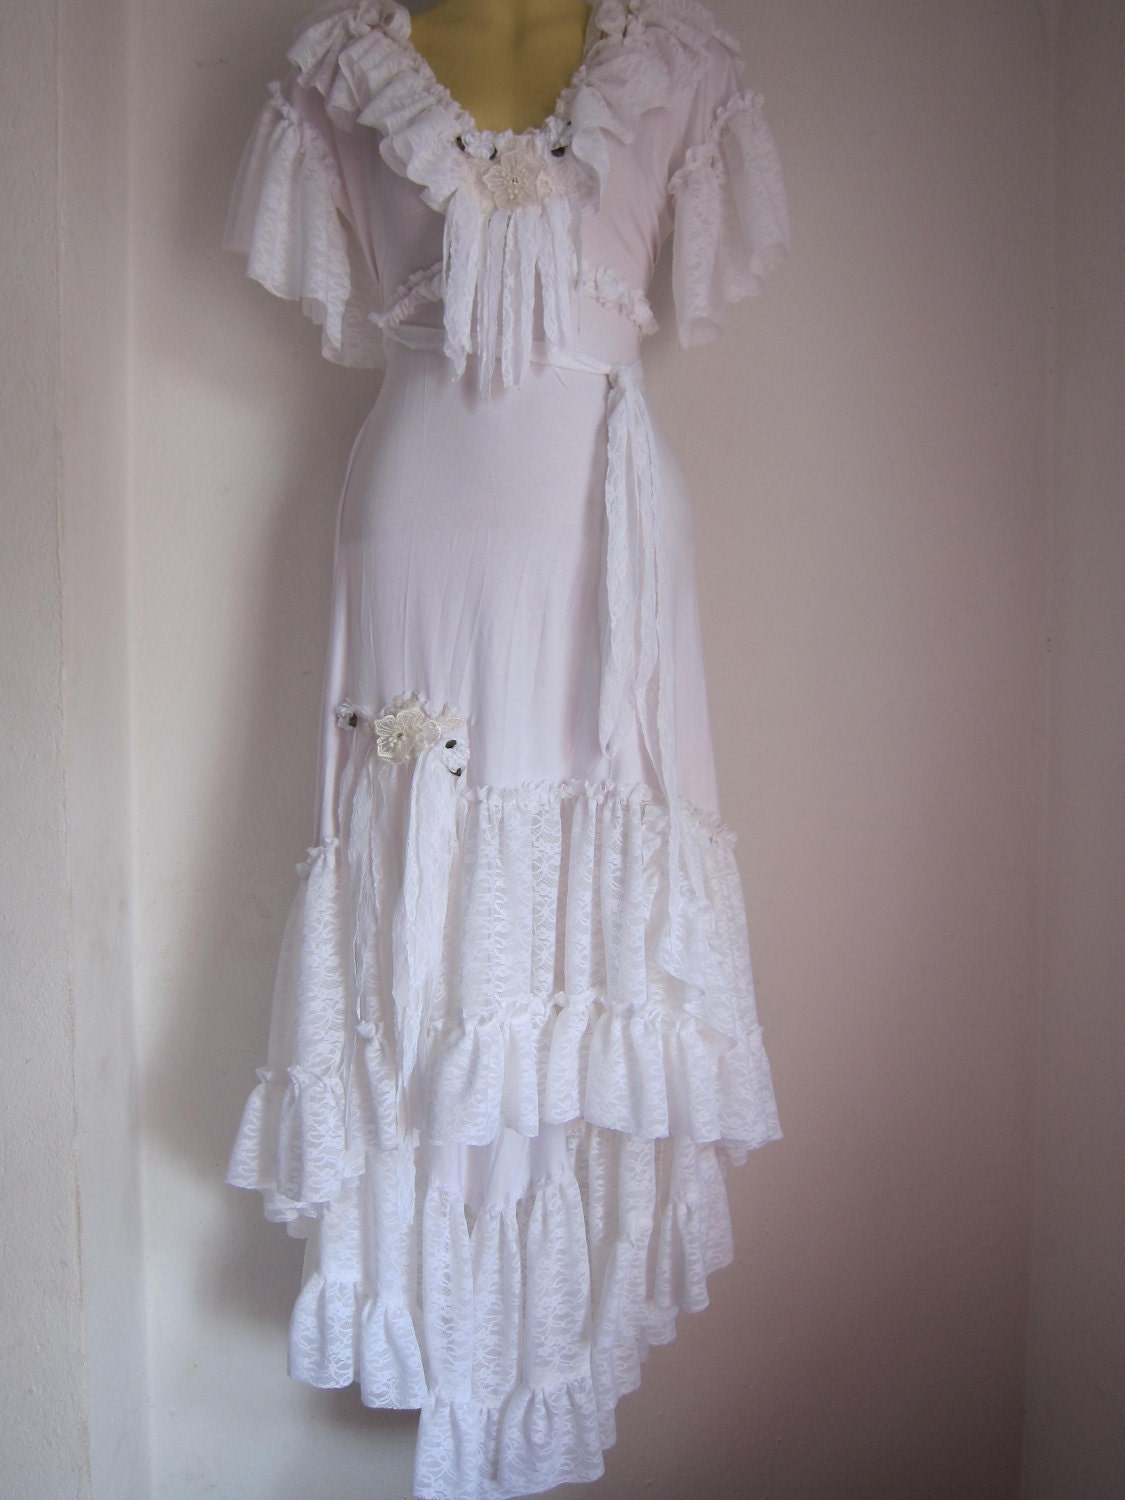 White Bohemian Gypsy Dress With Ruffles Of Lace Roses And